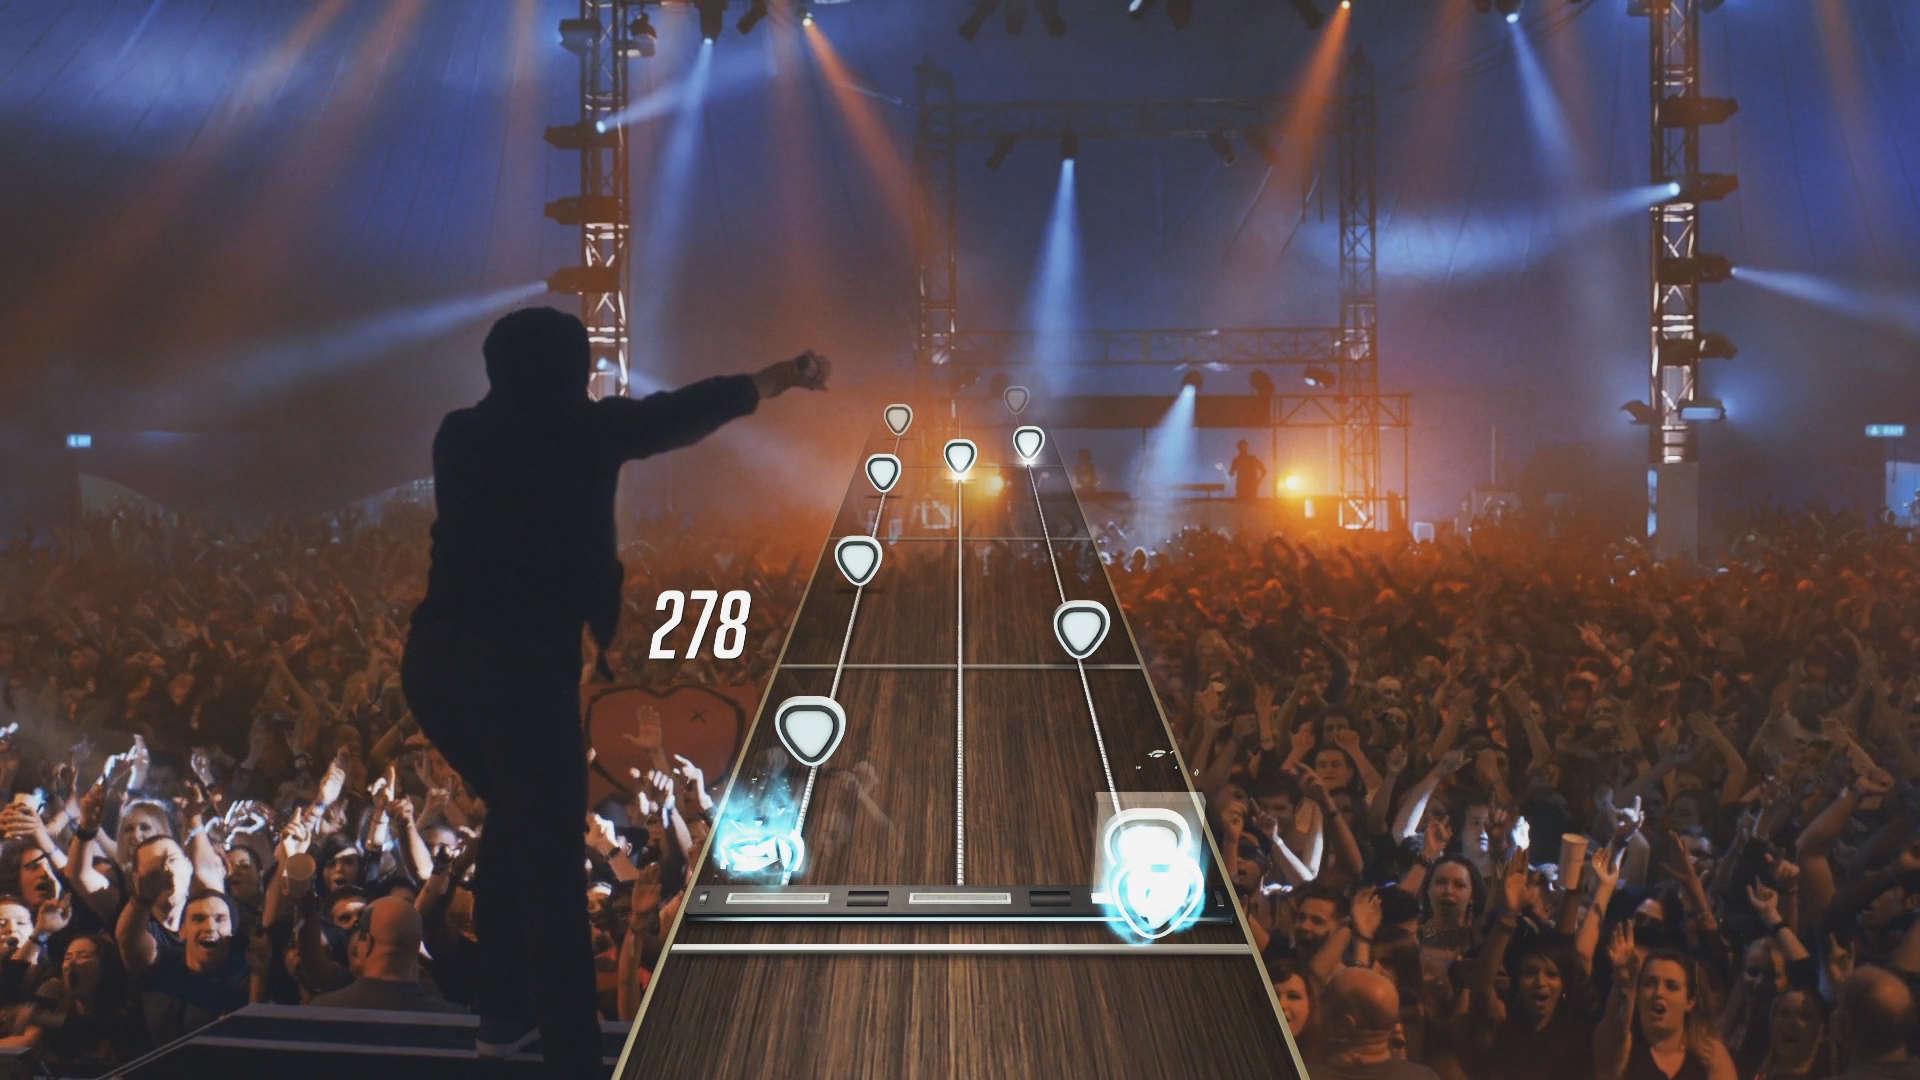 Guitar Hero Live ditches the cartoony look of previous games in the series.